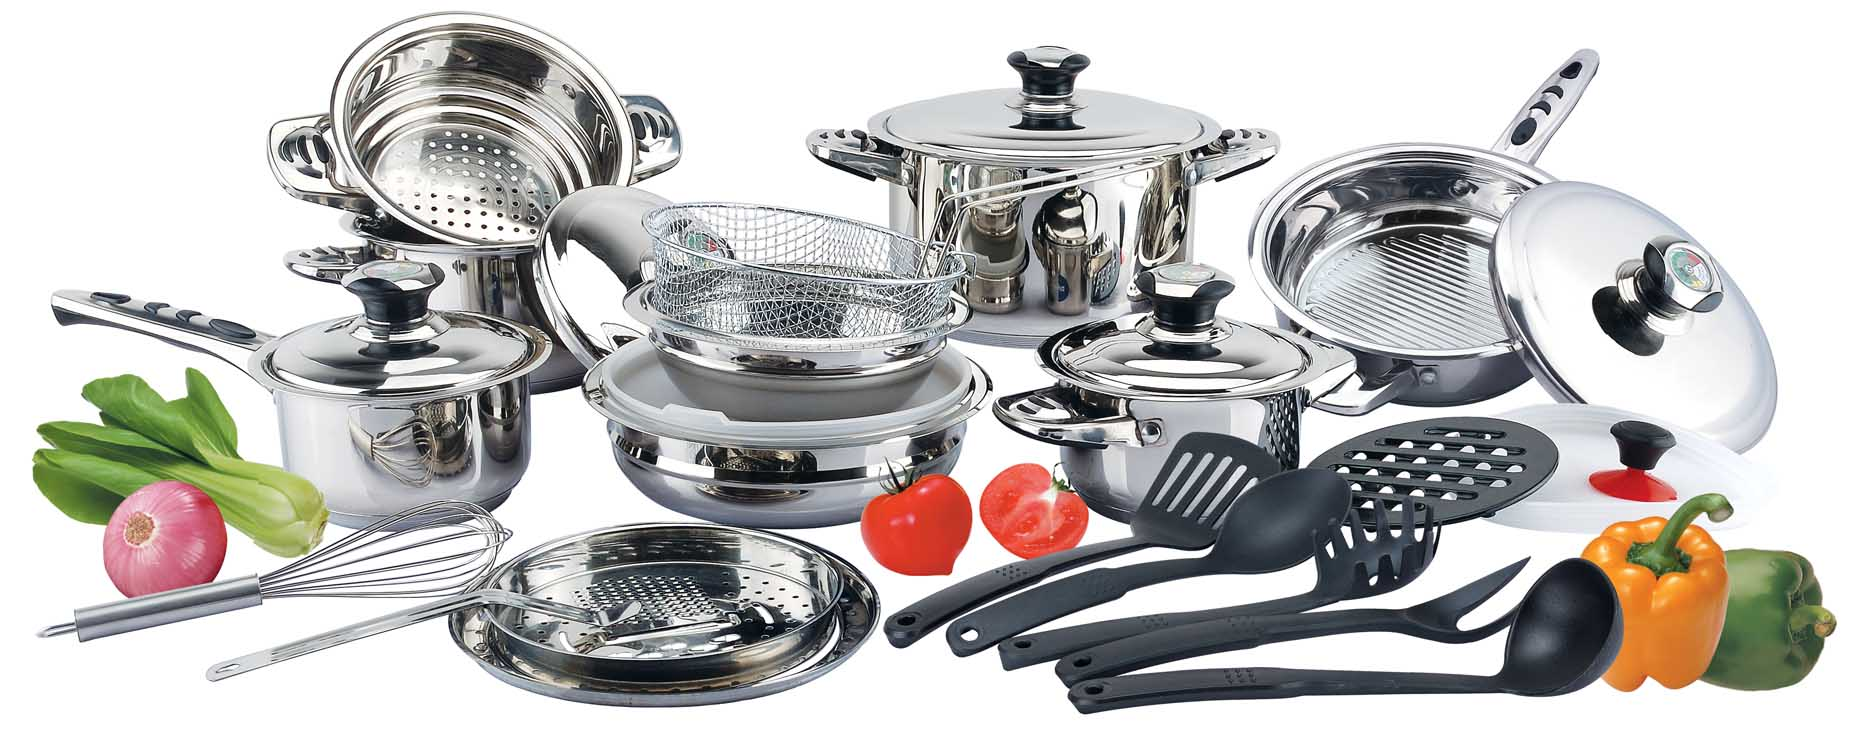 Farmhouse cookware sets